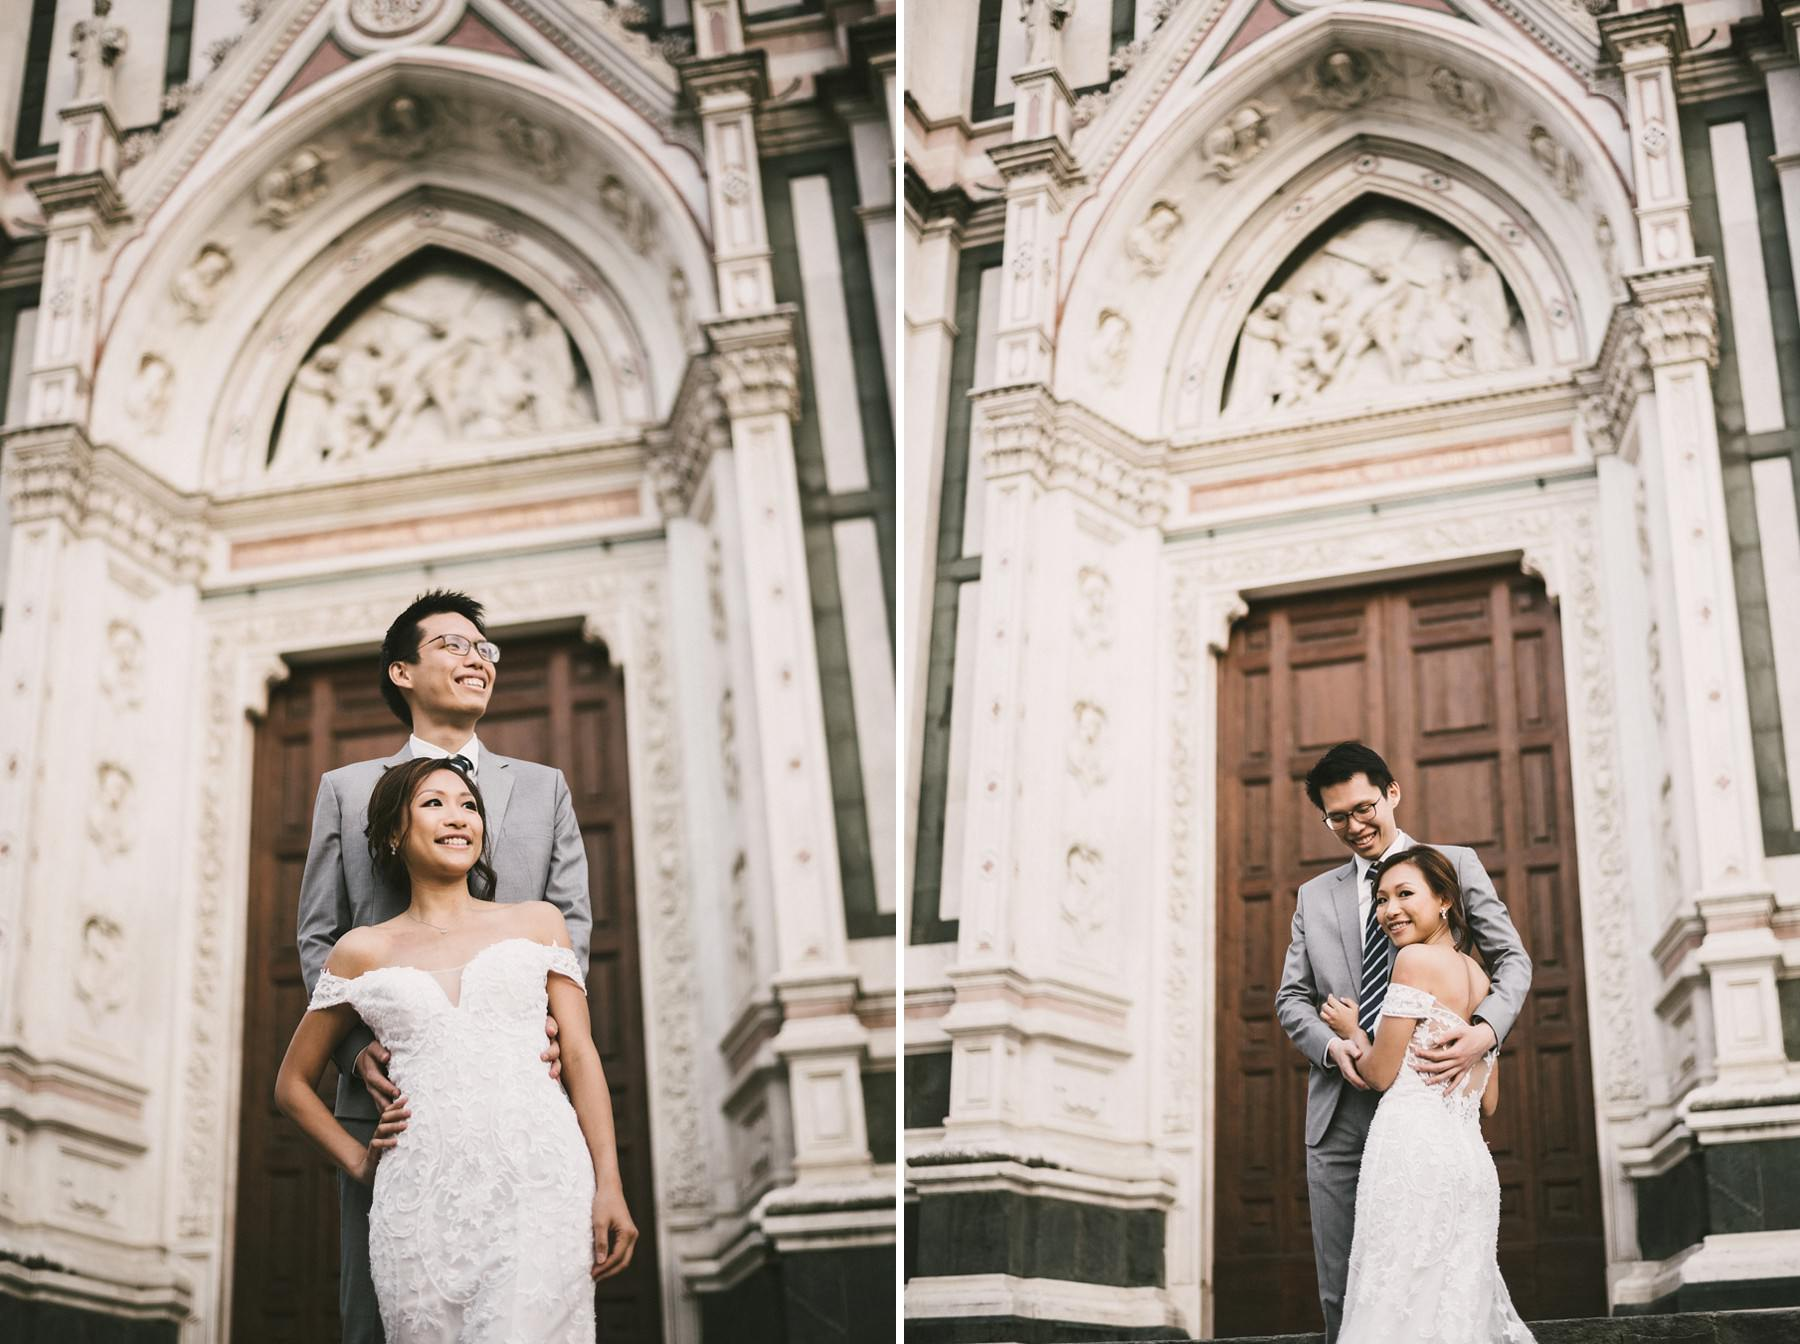 Engagement pre wedding photo shoot in Florence with wedding gown Santa Croce